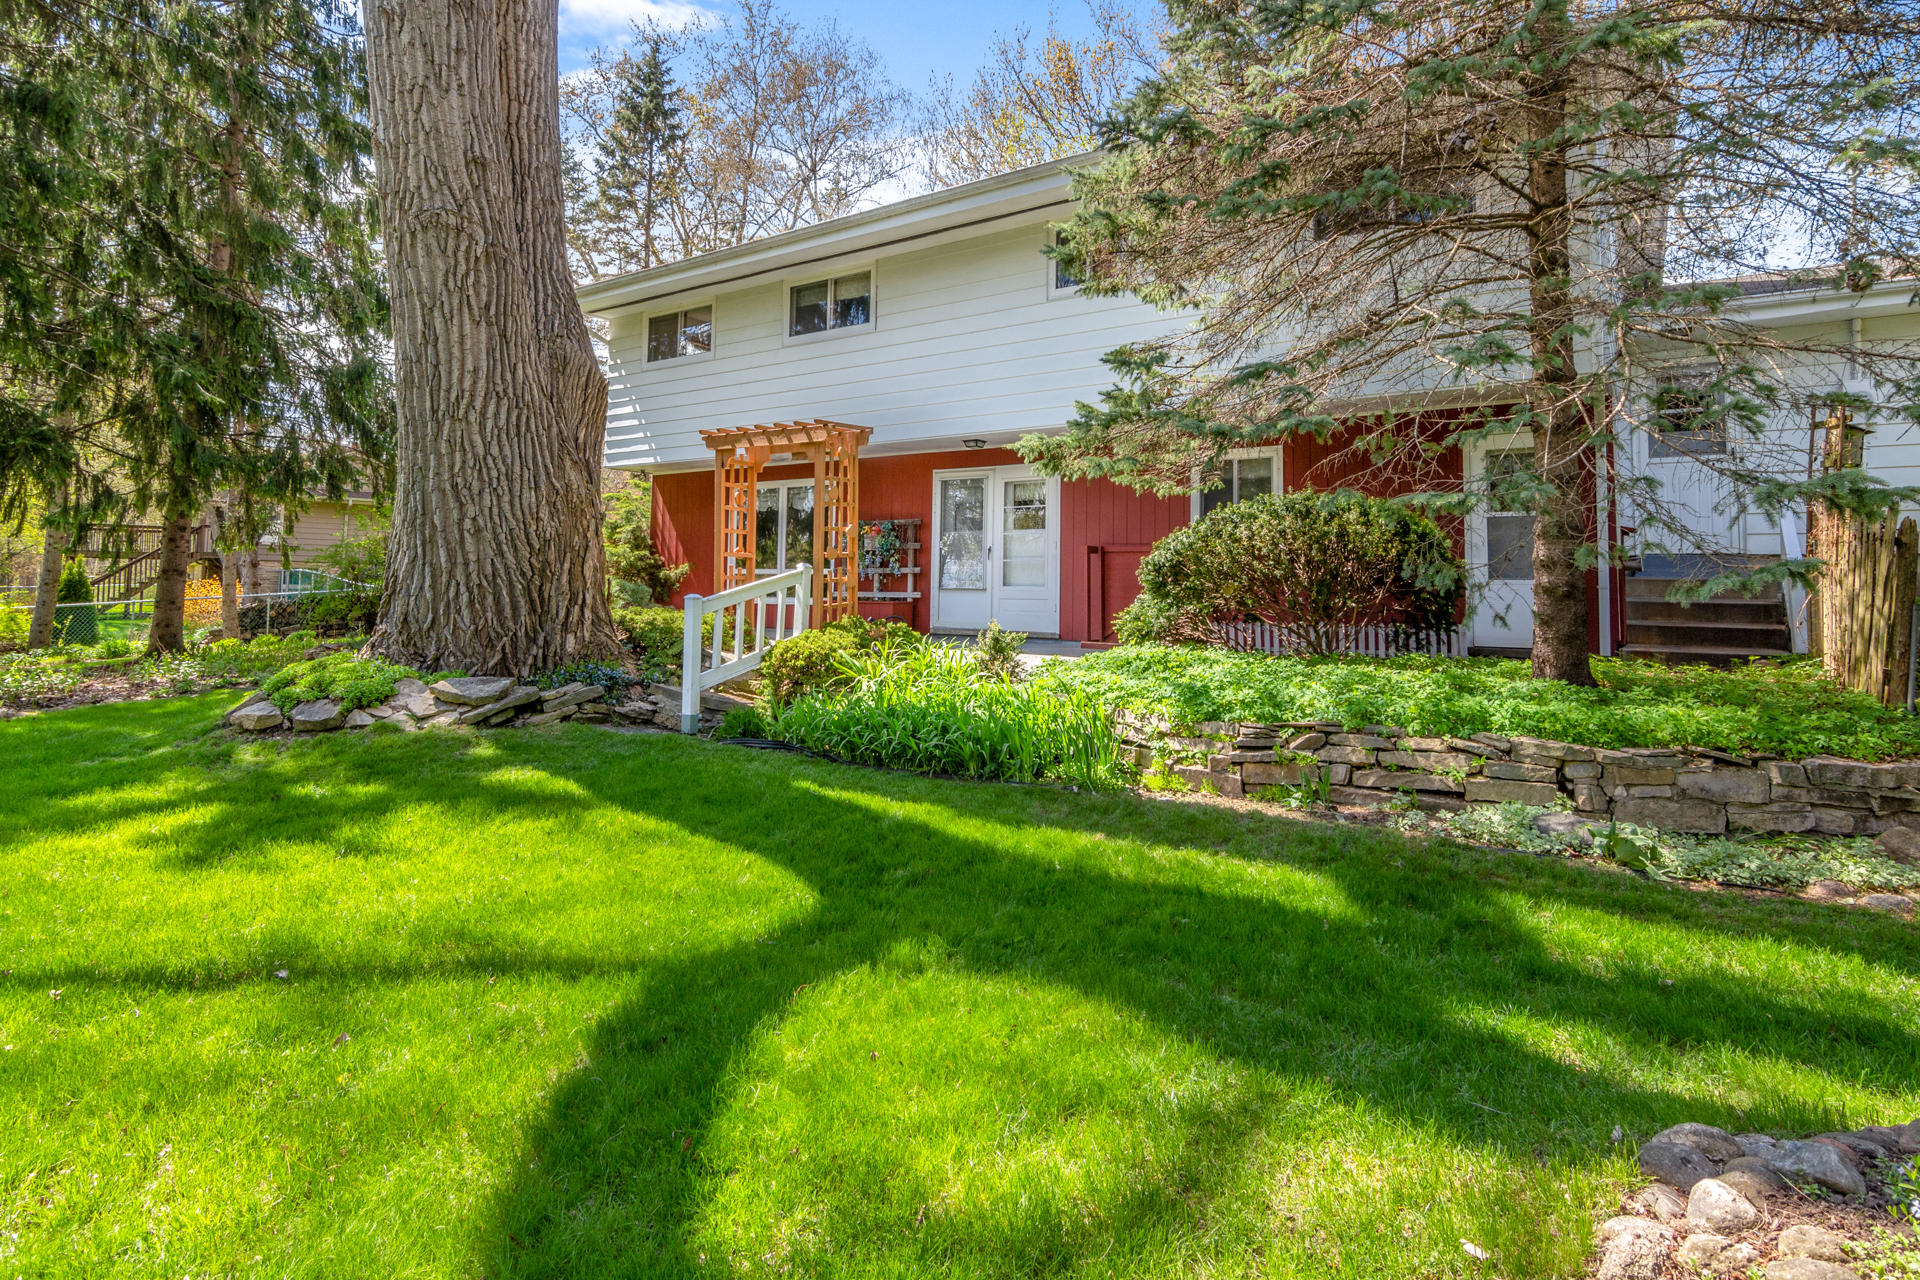 N39W22641 Grandview Dr, Pewaukee, Wisconsin 53072, 3 Bedrooms Bedrooms, 7 Rooms Rooms,2 BathroomsBathrooms,Single-Family,For Sale,Grandview Dr,1636923